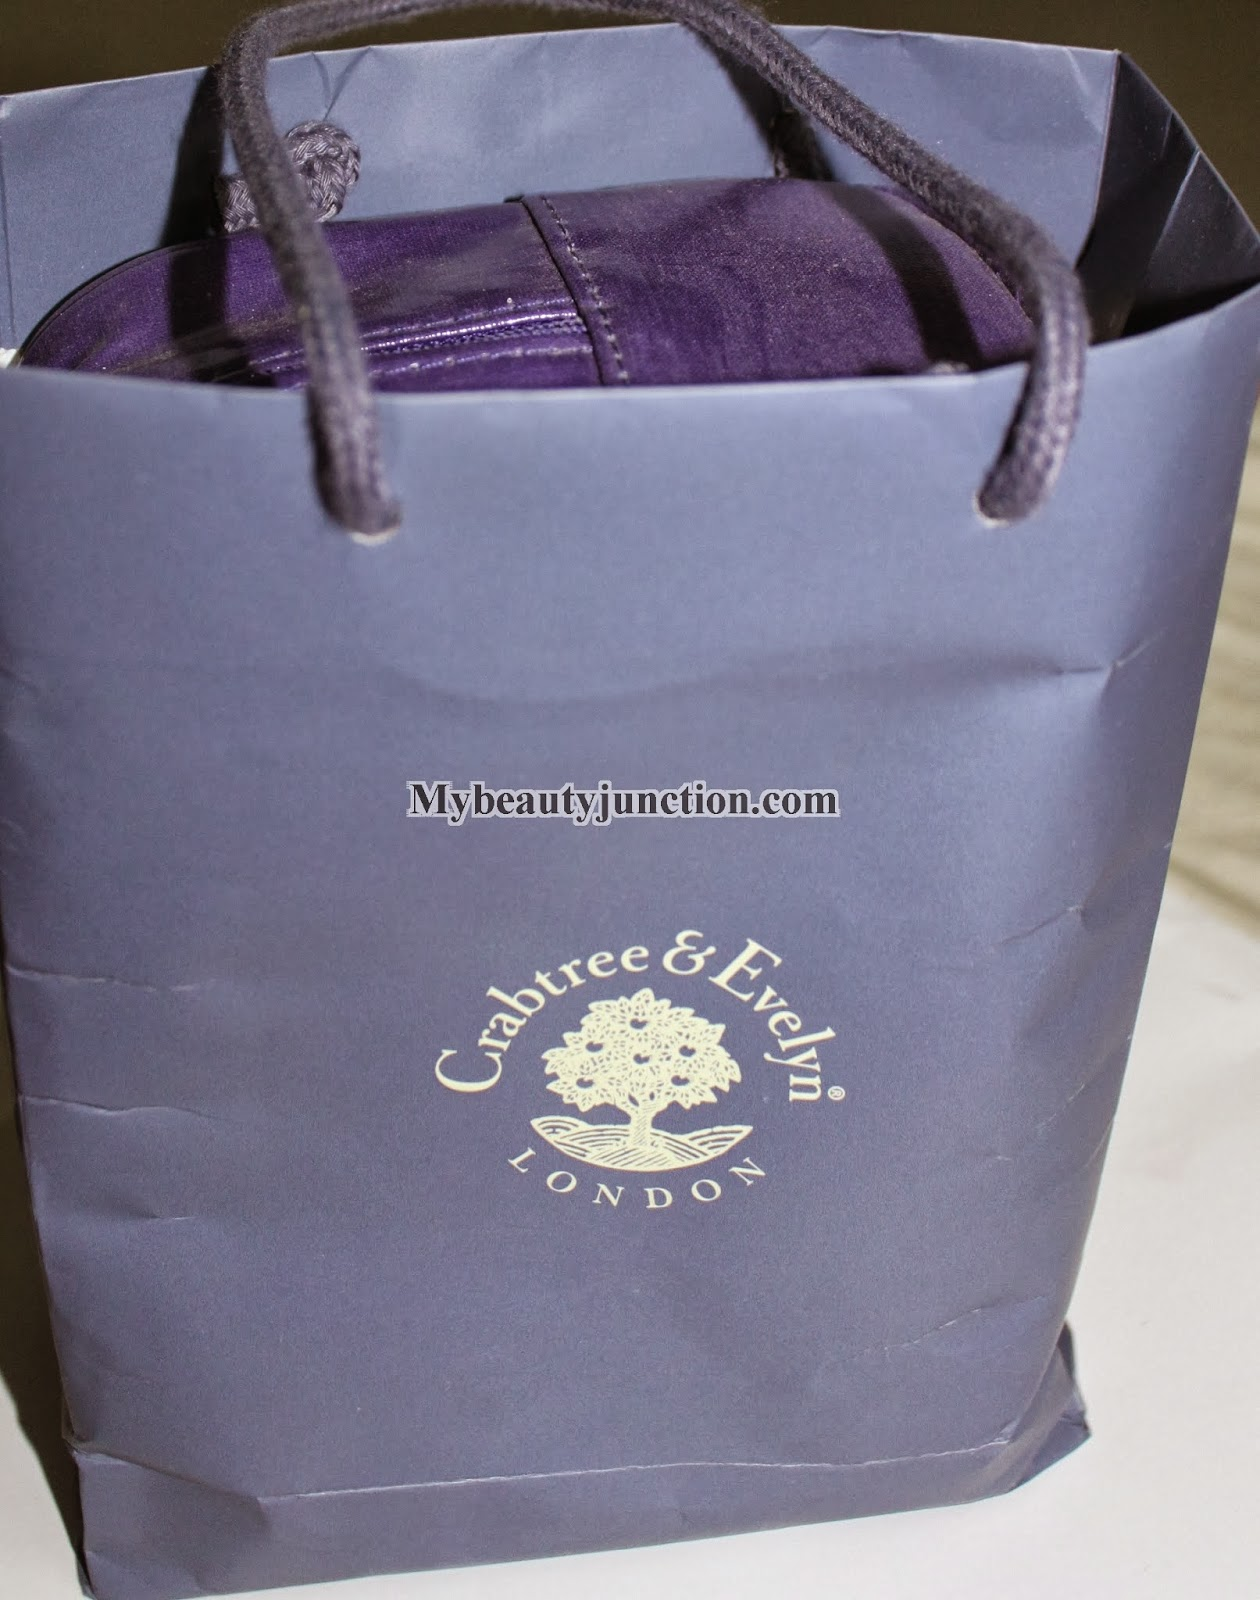 Crabtree and Evelyn Iris bath and body set review